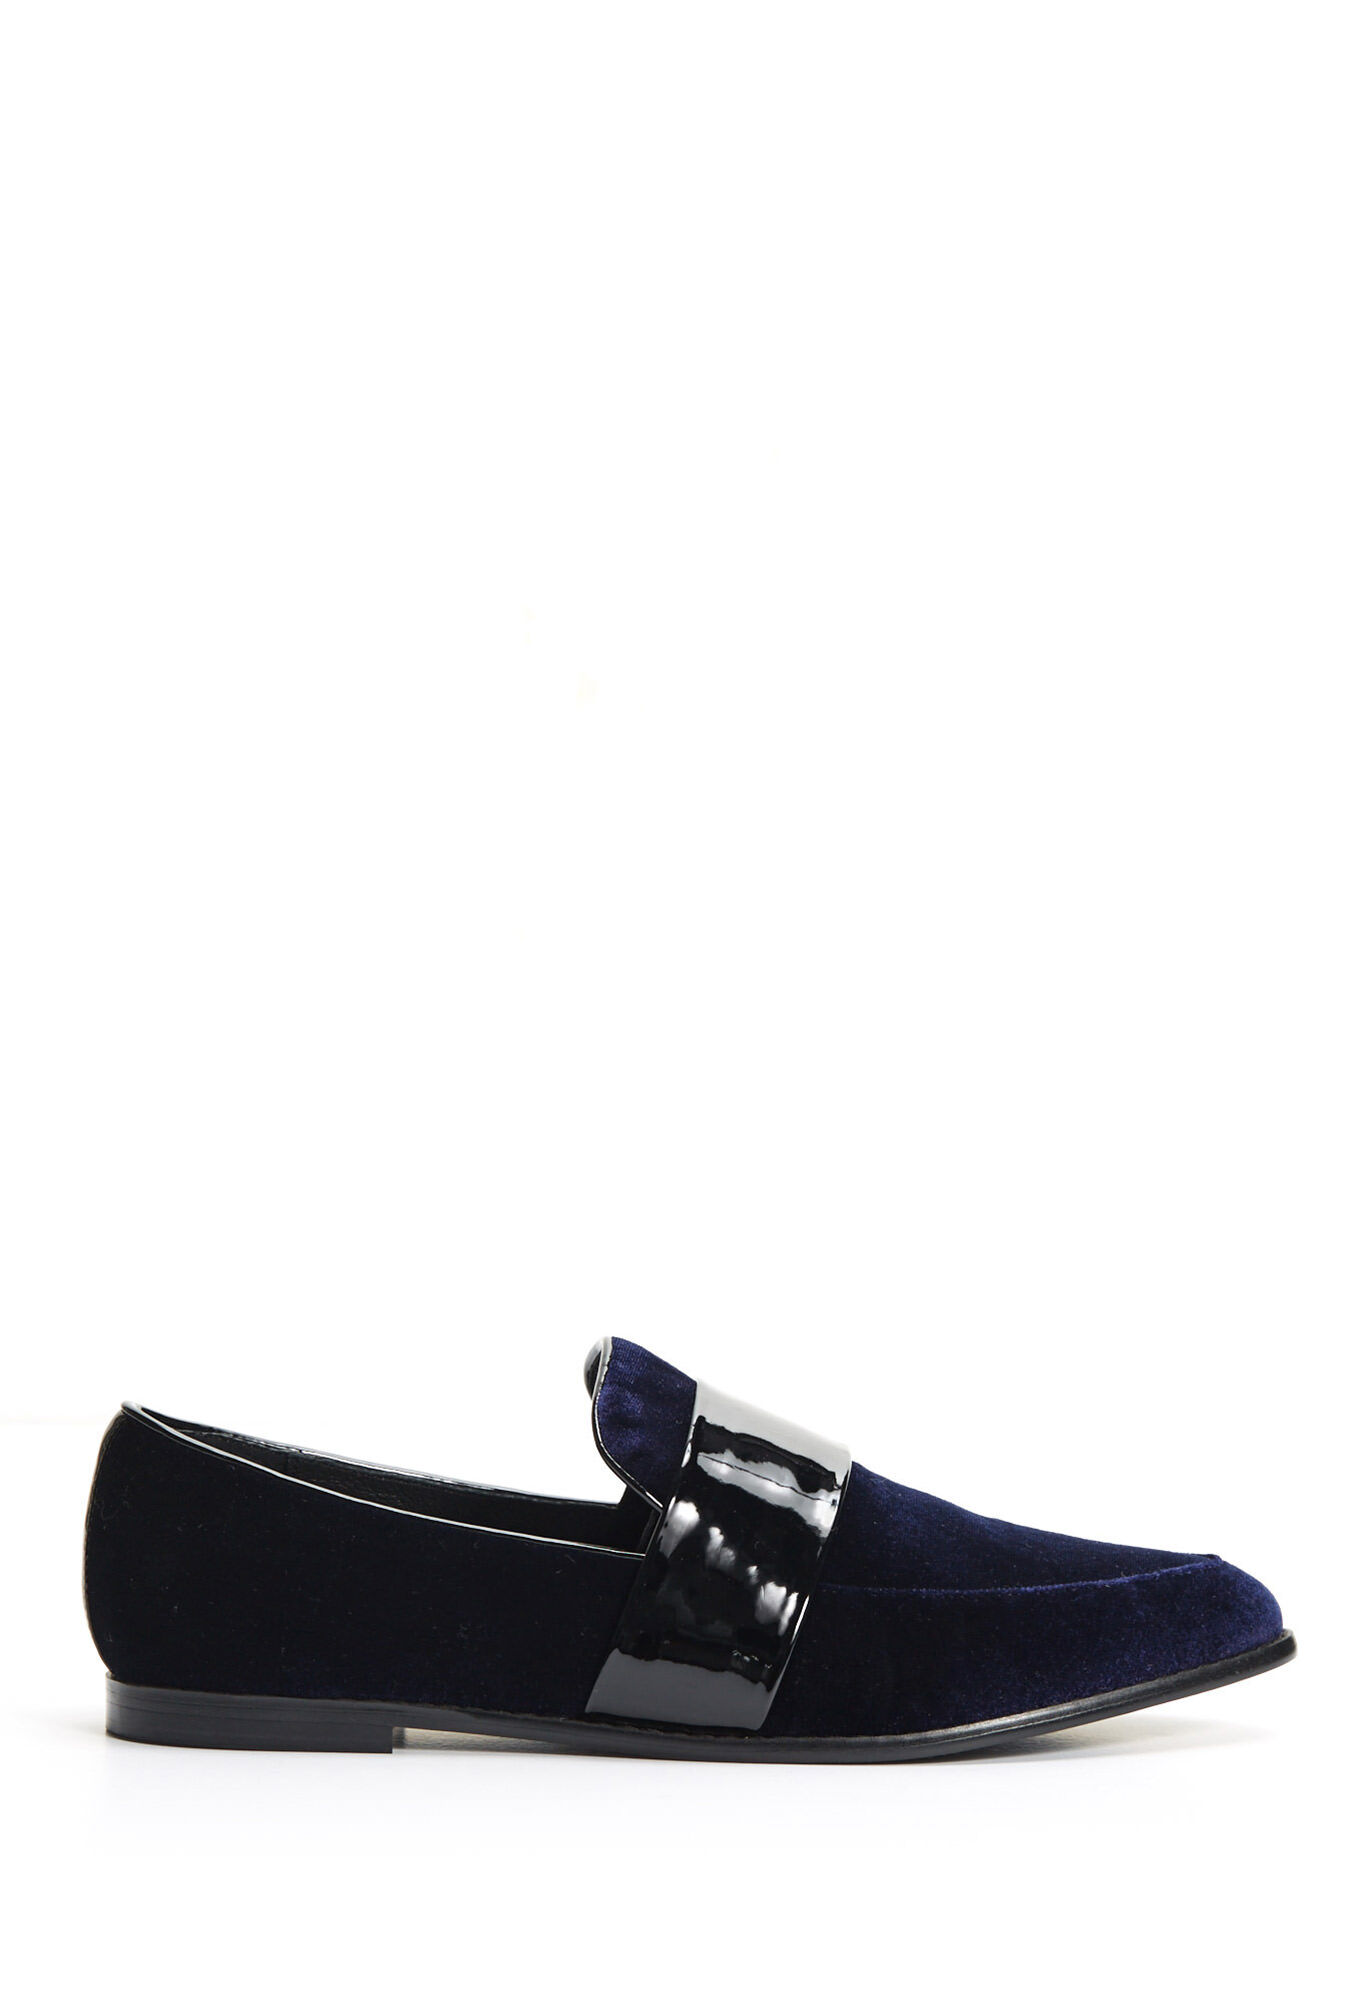 saba ashley loafernavy37